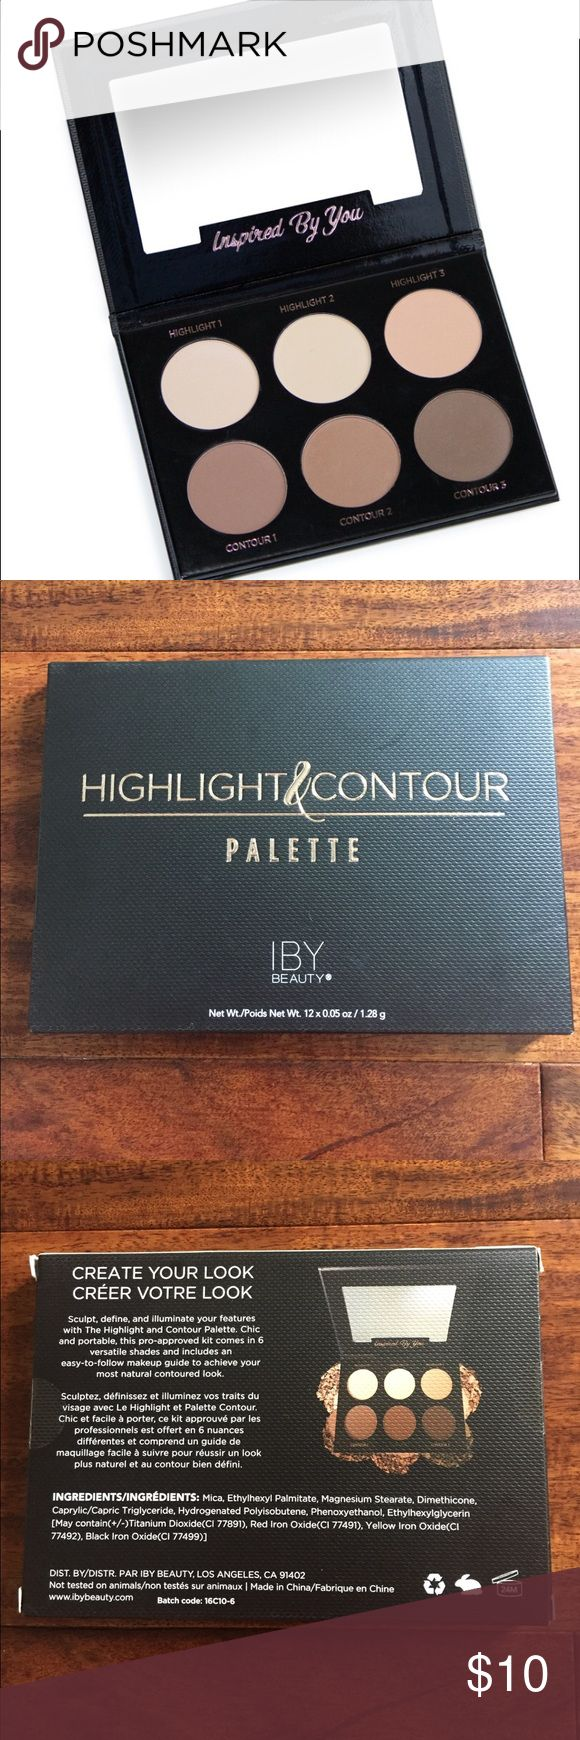 IBY Contour Palette Sealed, new and never opened. Sculpt, define, and illuminate your features with the Highlight and Contour Palette. Chic and portable, this pro-approved kit comes in 6 versatile shades and includes an easy-to-follow makeup guide to achieve your most natural contoured look. IBY Makeup